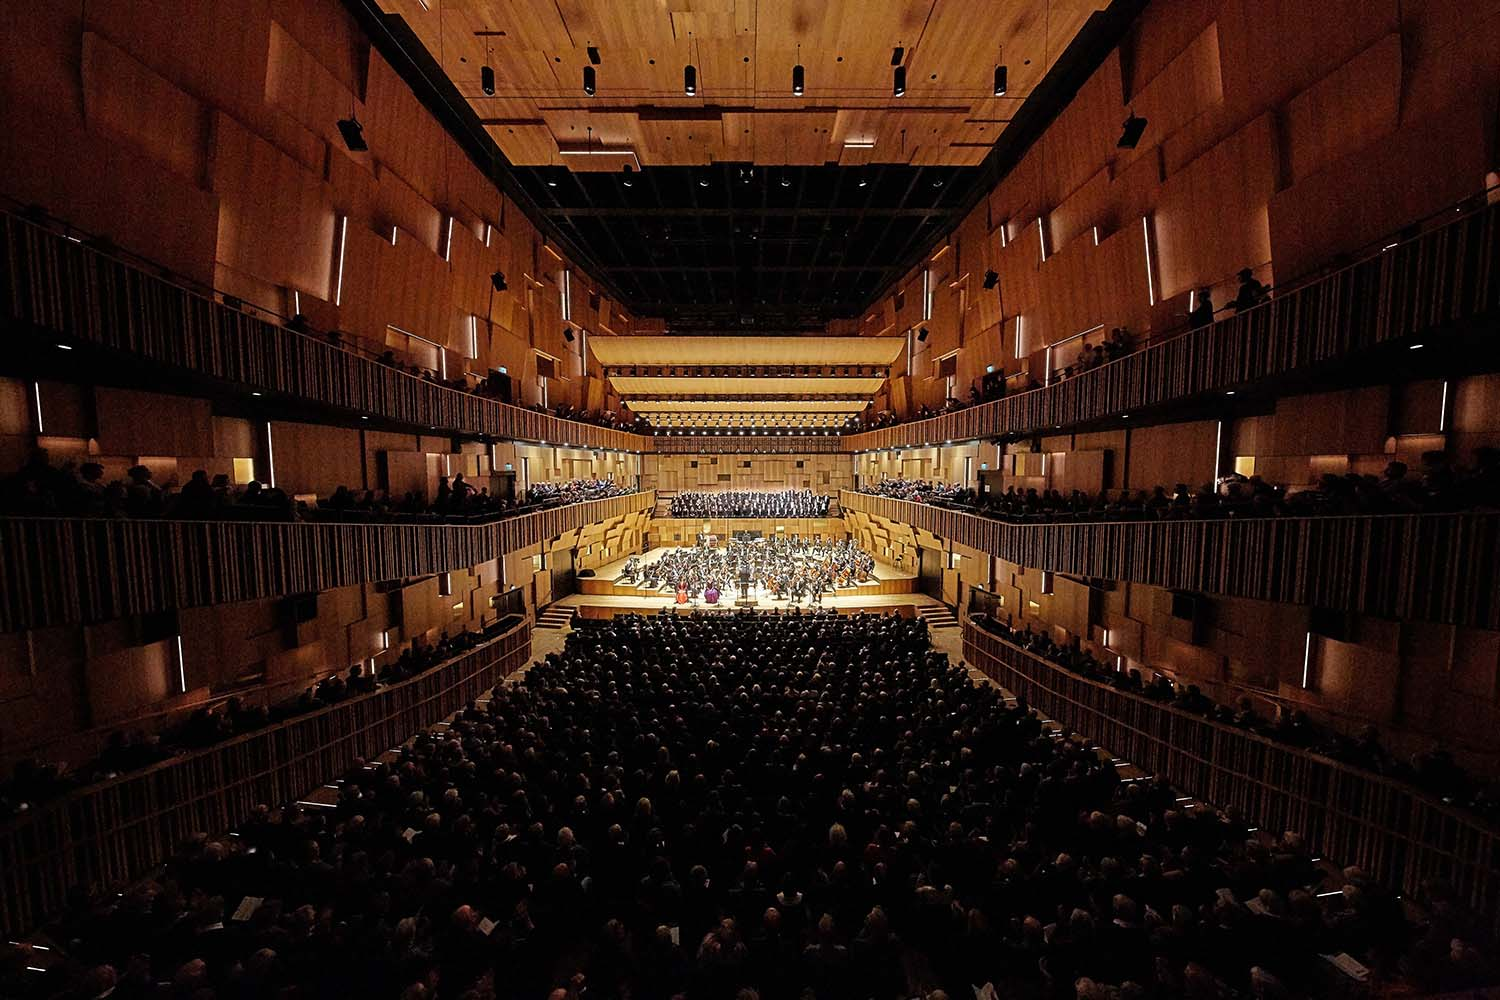 The 45m long, 23m wide, 20m high concert hall is purposely designed for the Malmö Symphony Orchestra